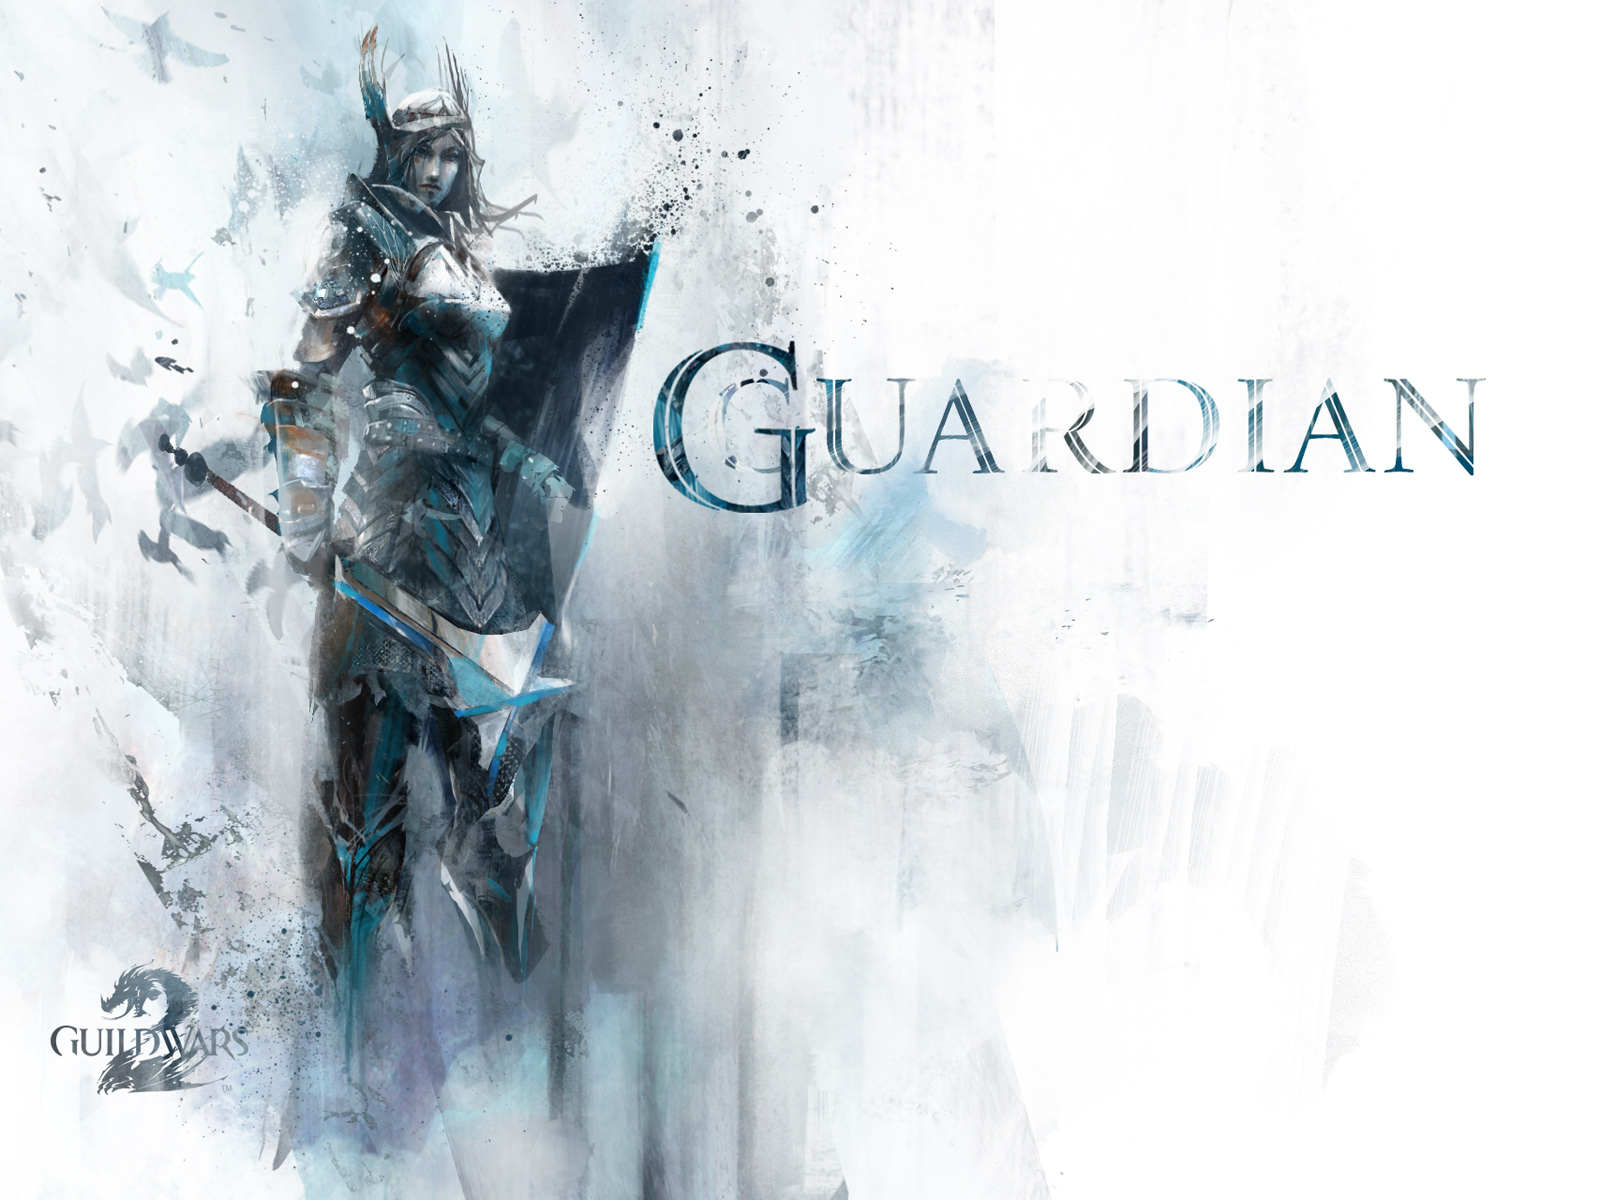 Guild Wars 2, Guild Wars, Guild Wars 2 Beta signup, PC, Future Pixel, MMO, RPG, MMORPG, games, gaming, news